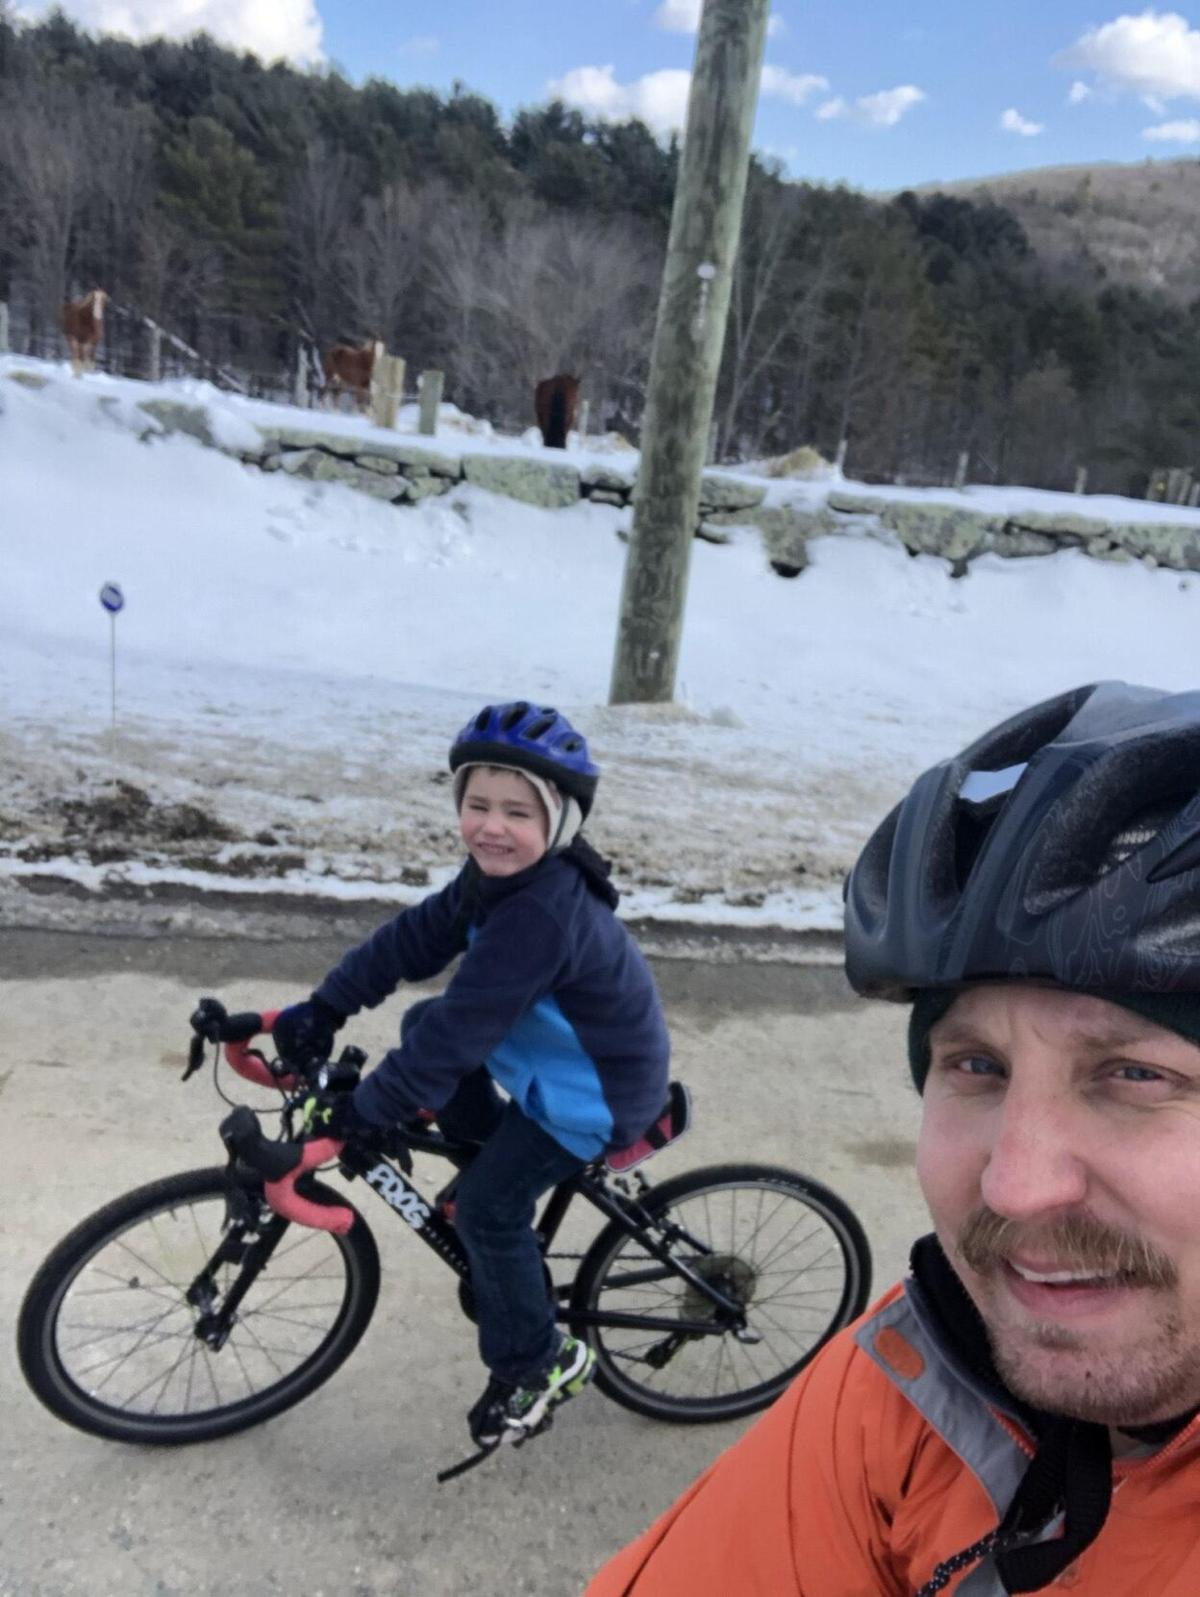 Cornwall dad starts bike racing team for youth